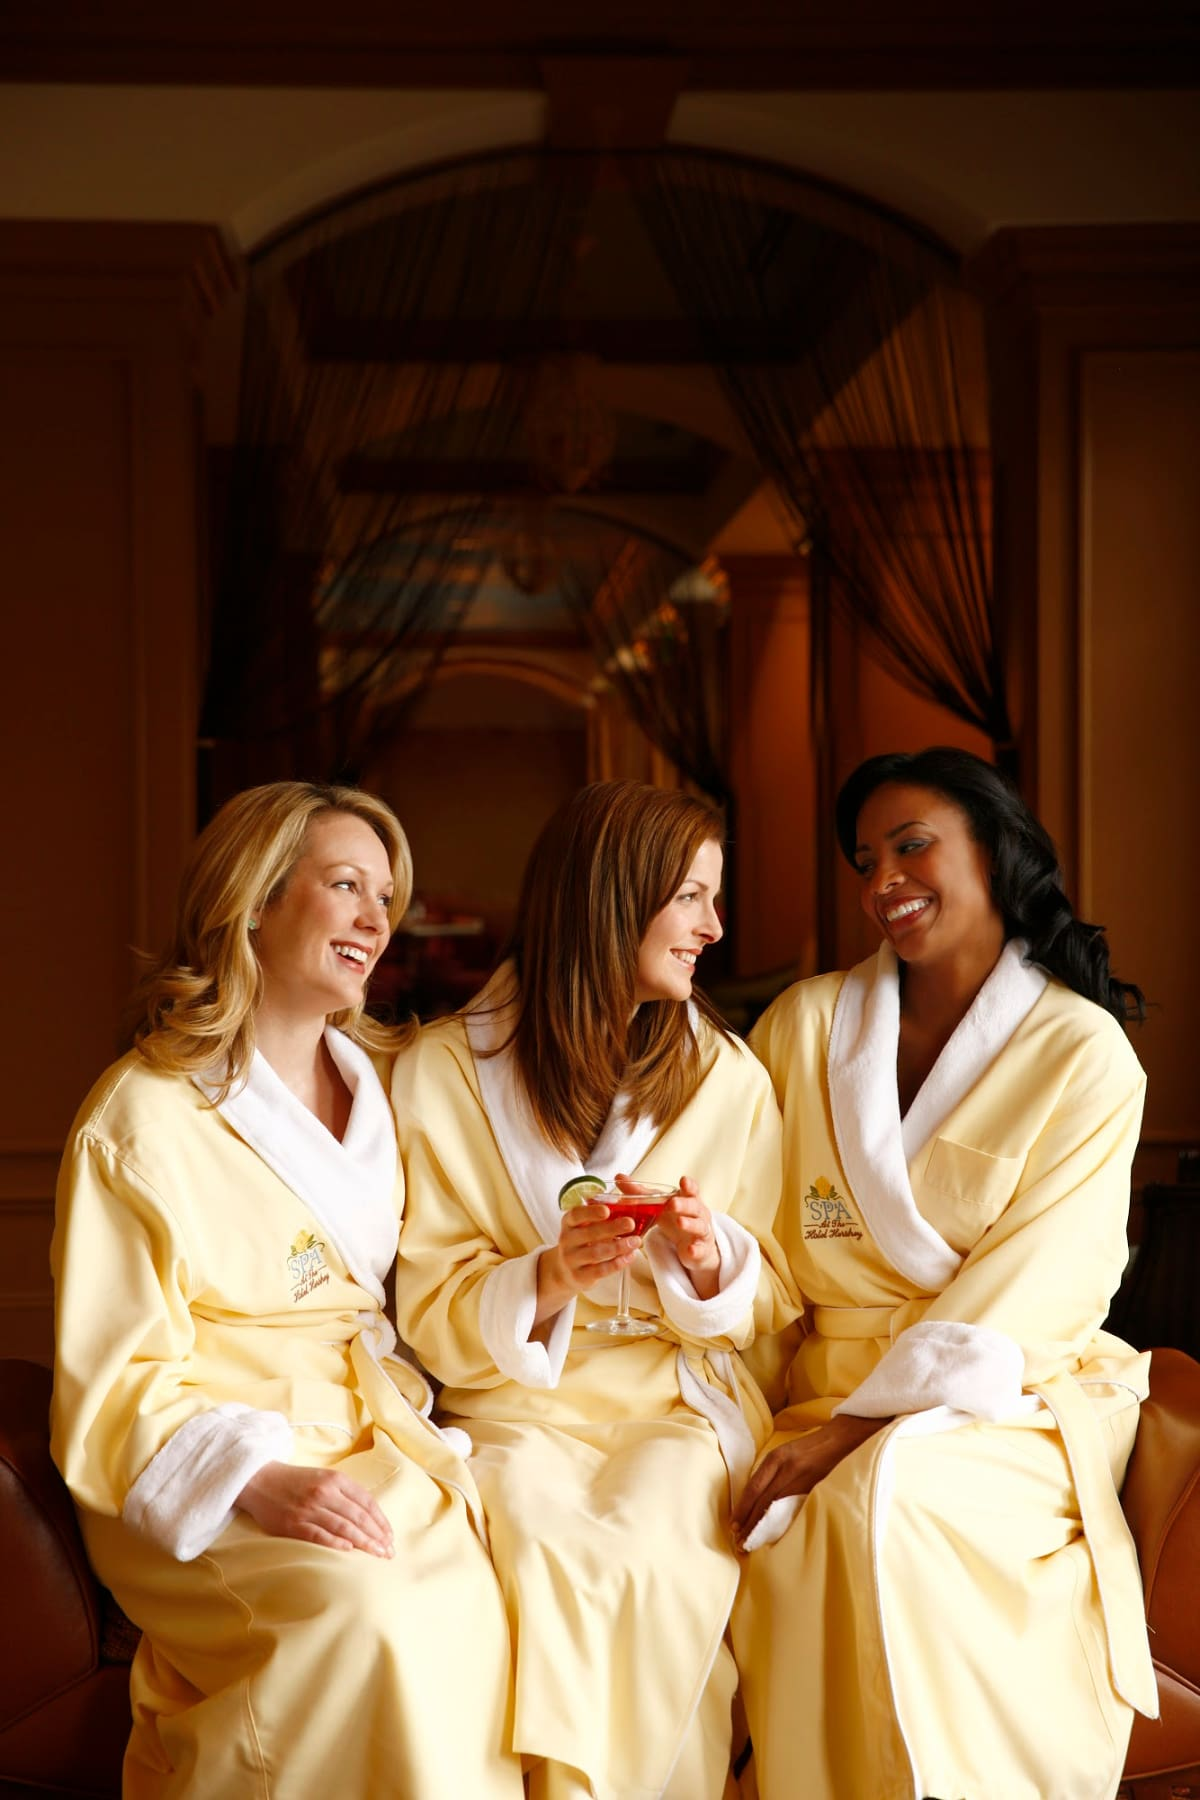 Spa + chocolate = heaven at the Spa at Hershey Hotel